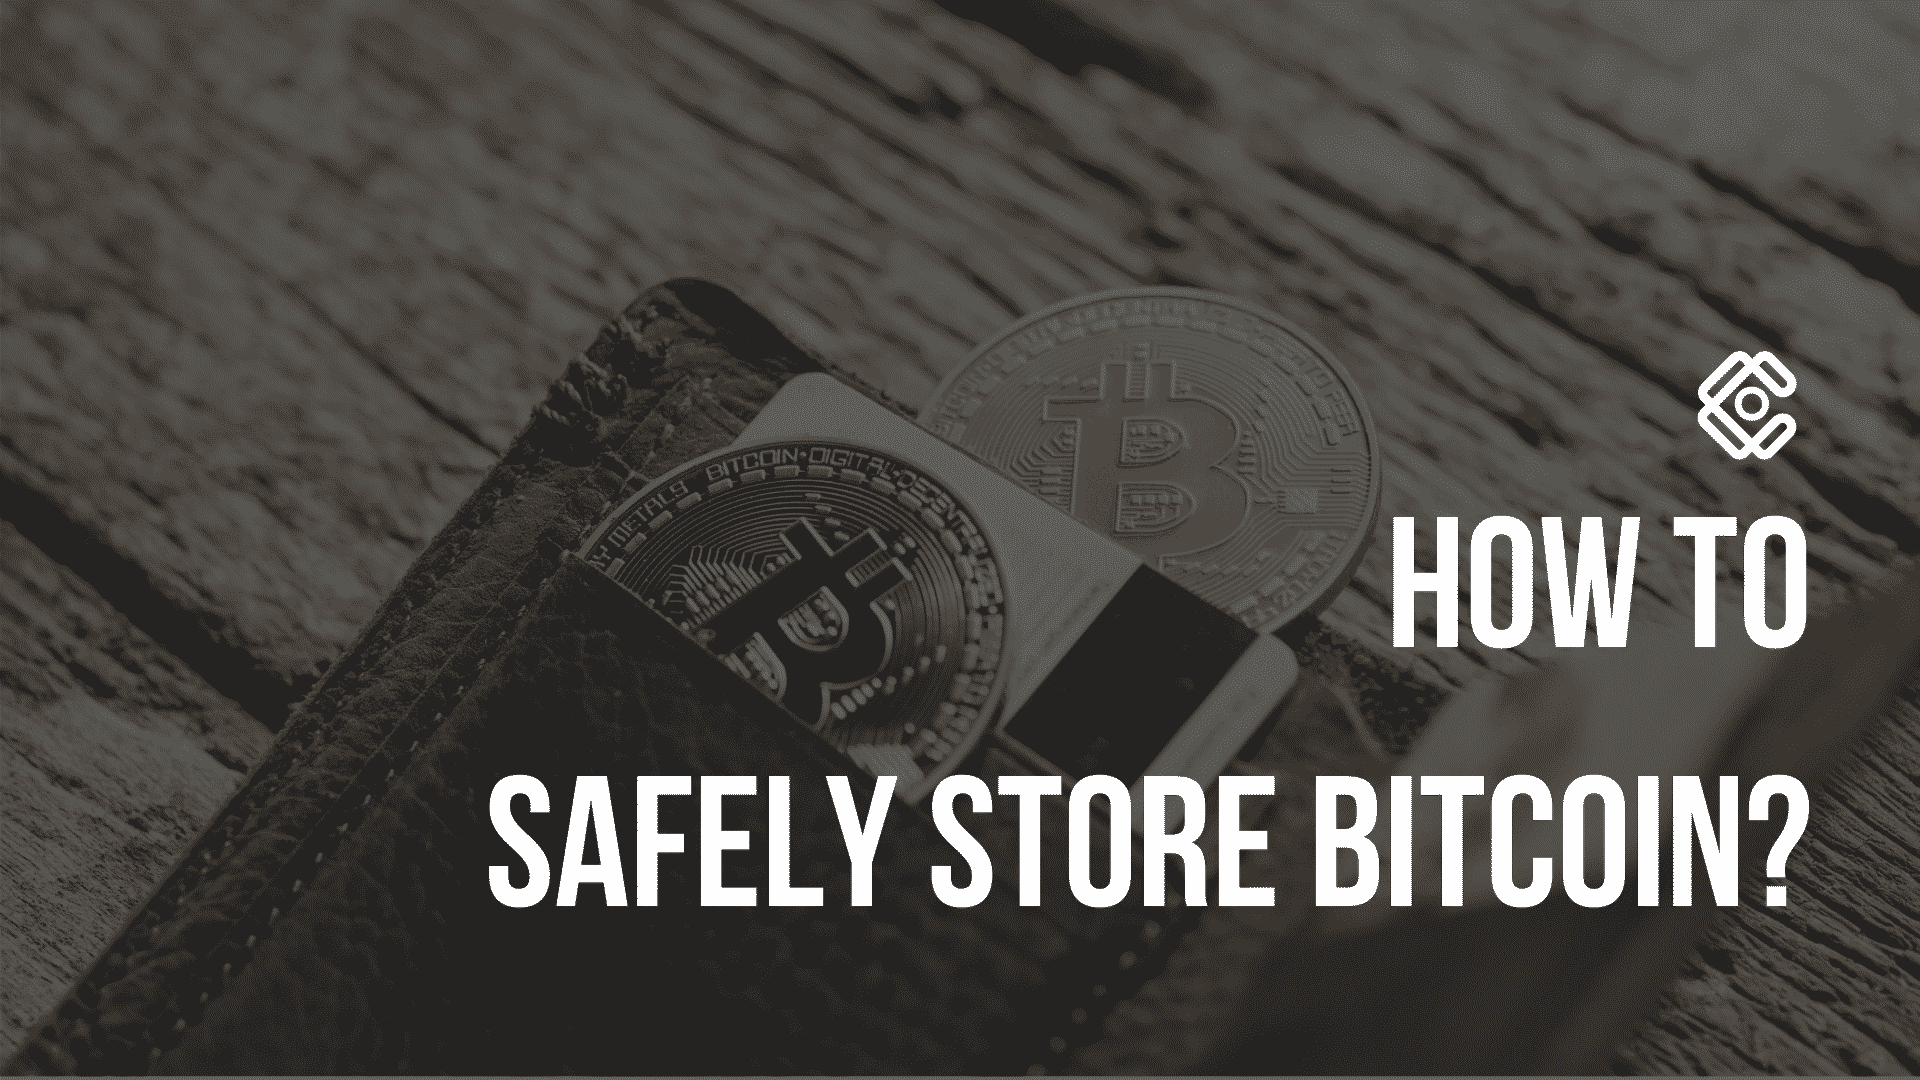 How to safely store Bitcoin?